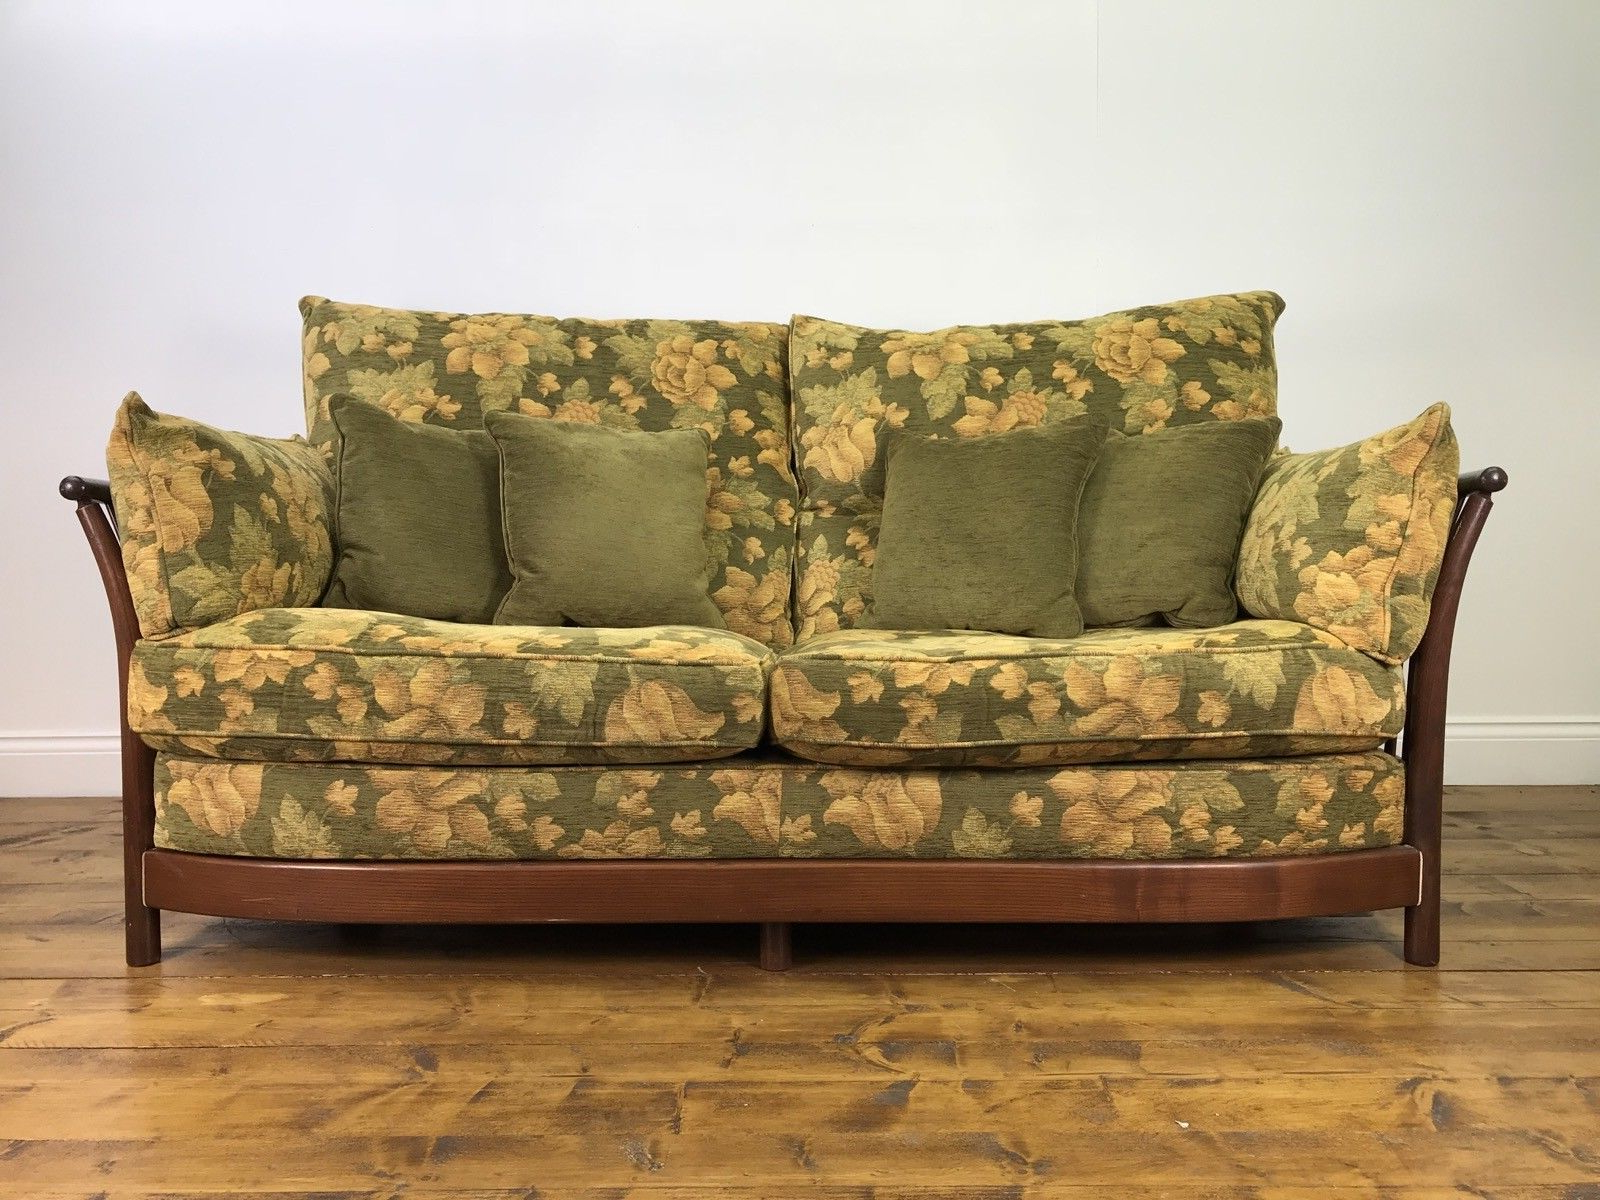 Newest Stunning Ercol Renaissance 3 Seater Sofa Golden Dawn Elm Chair Sofa In Elm Sofa Chairs (View 13 of 20)